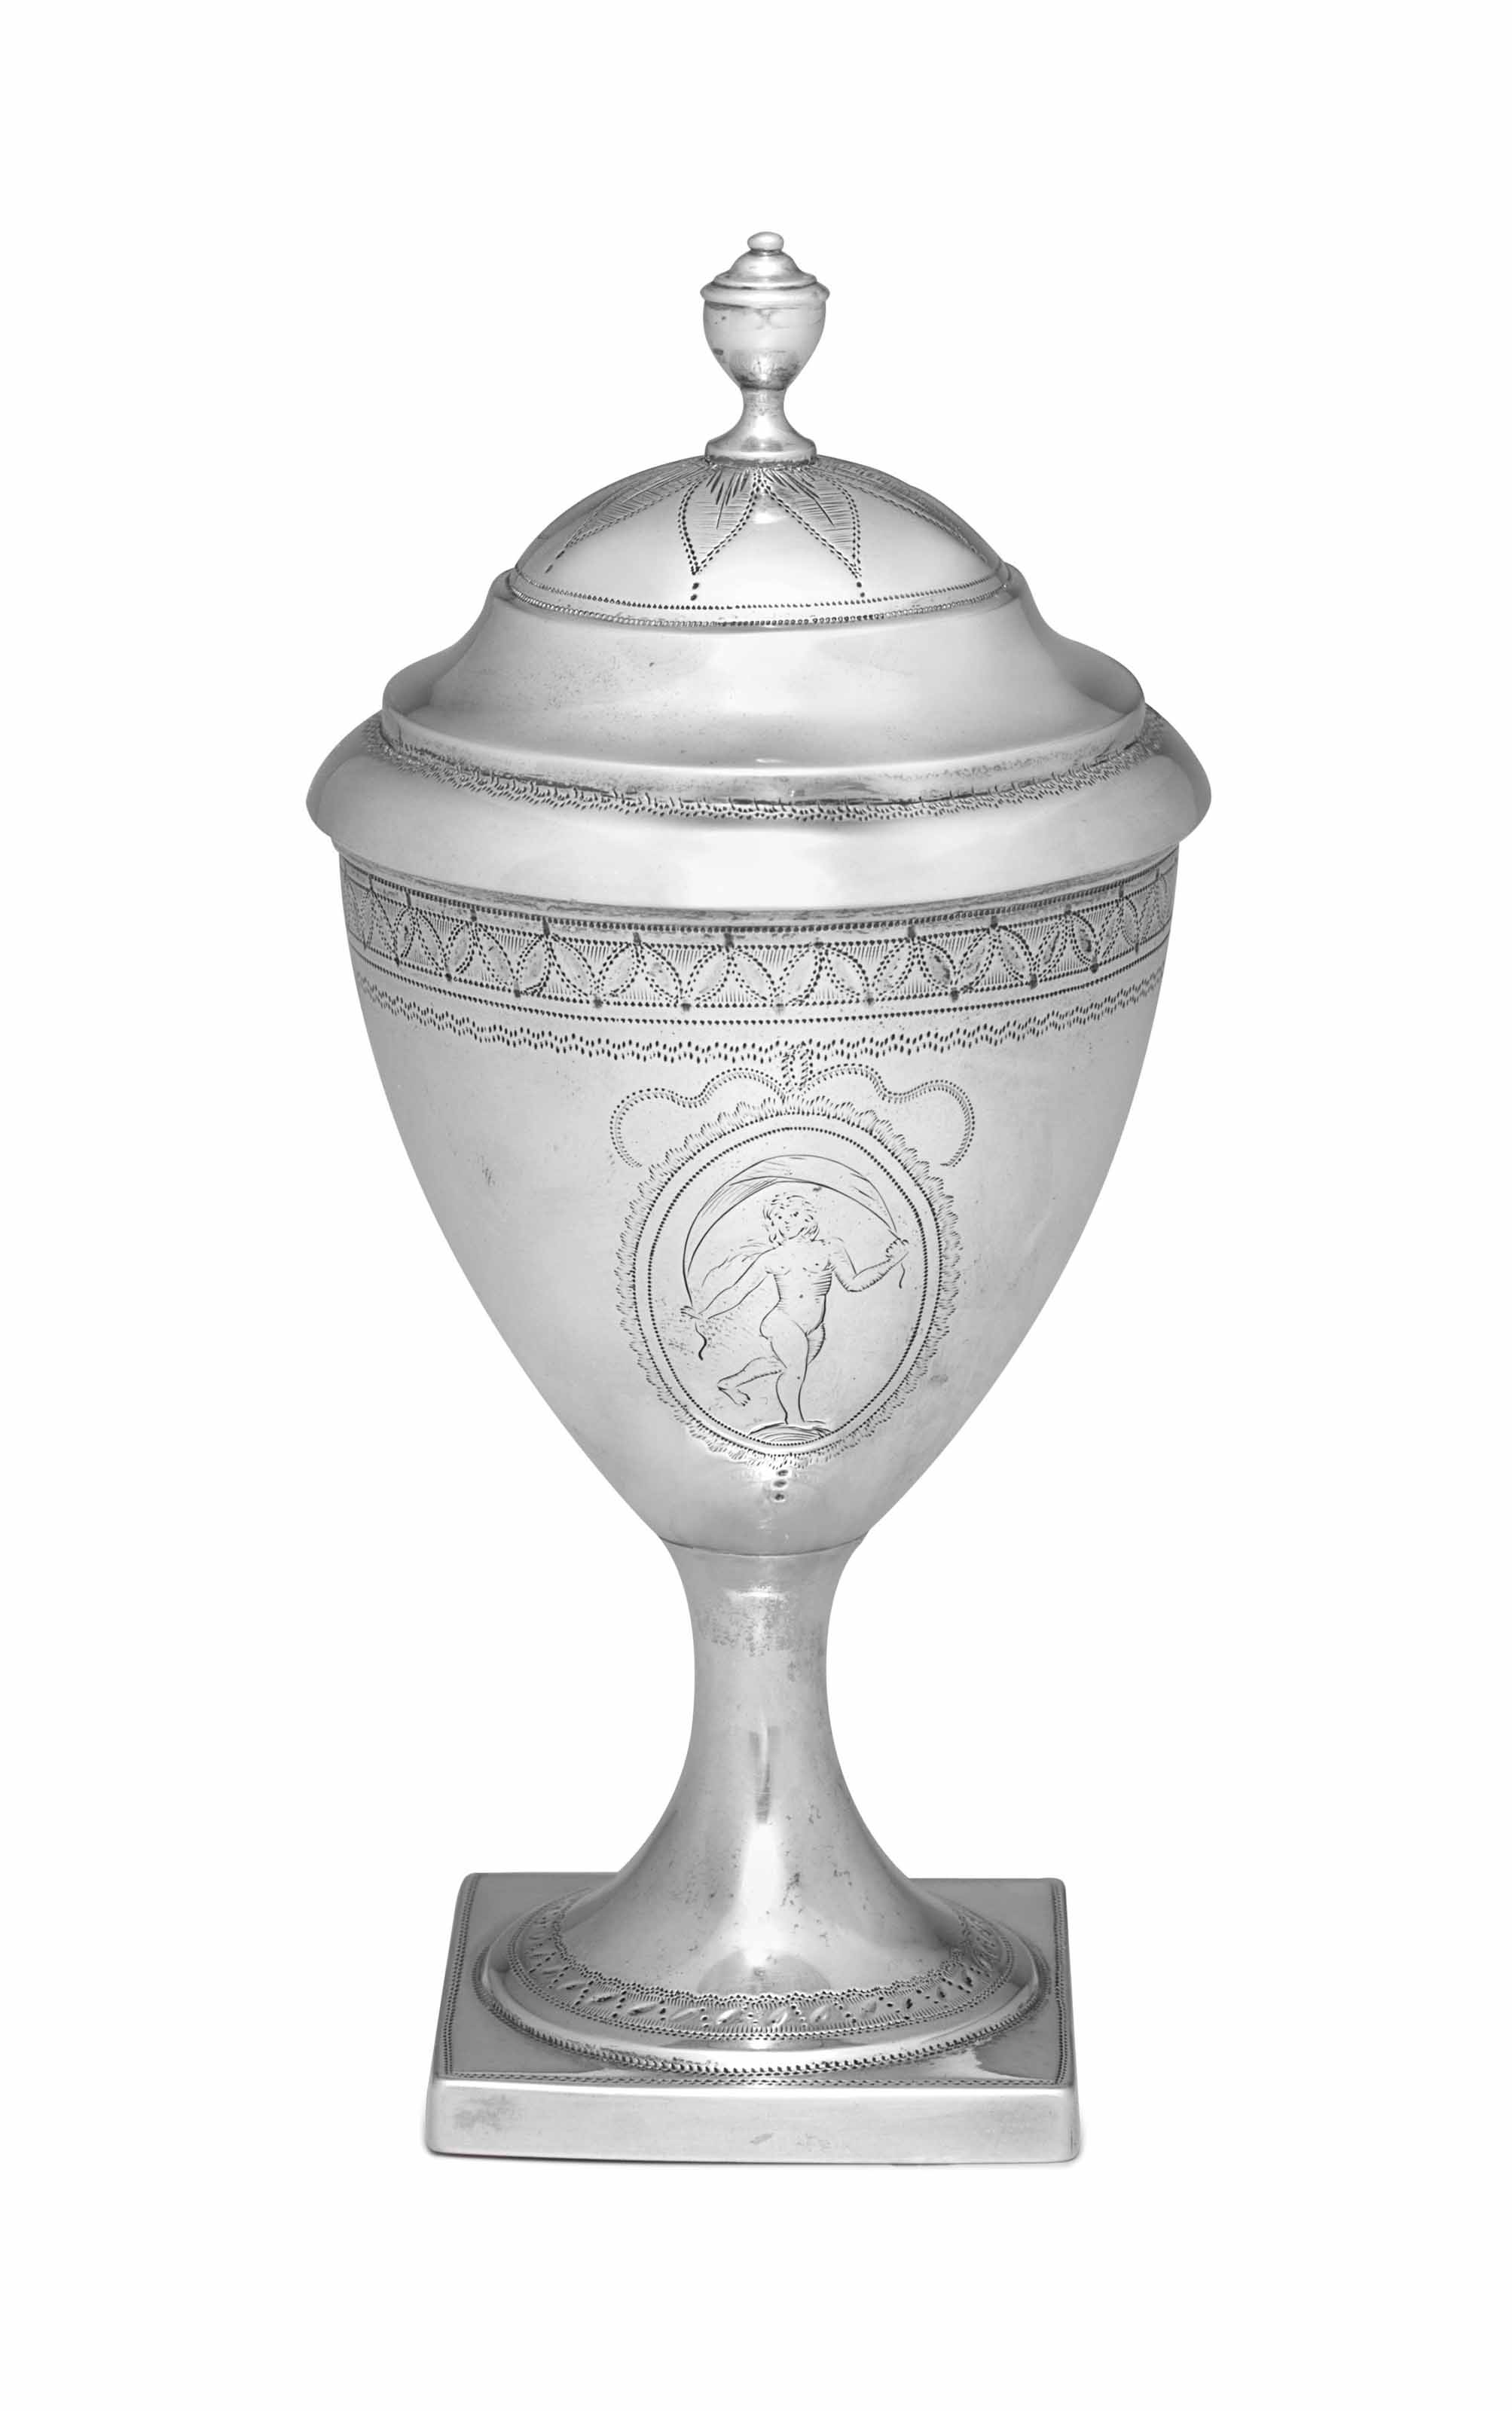 A RARE SILVER COVERED VASE